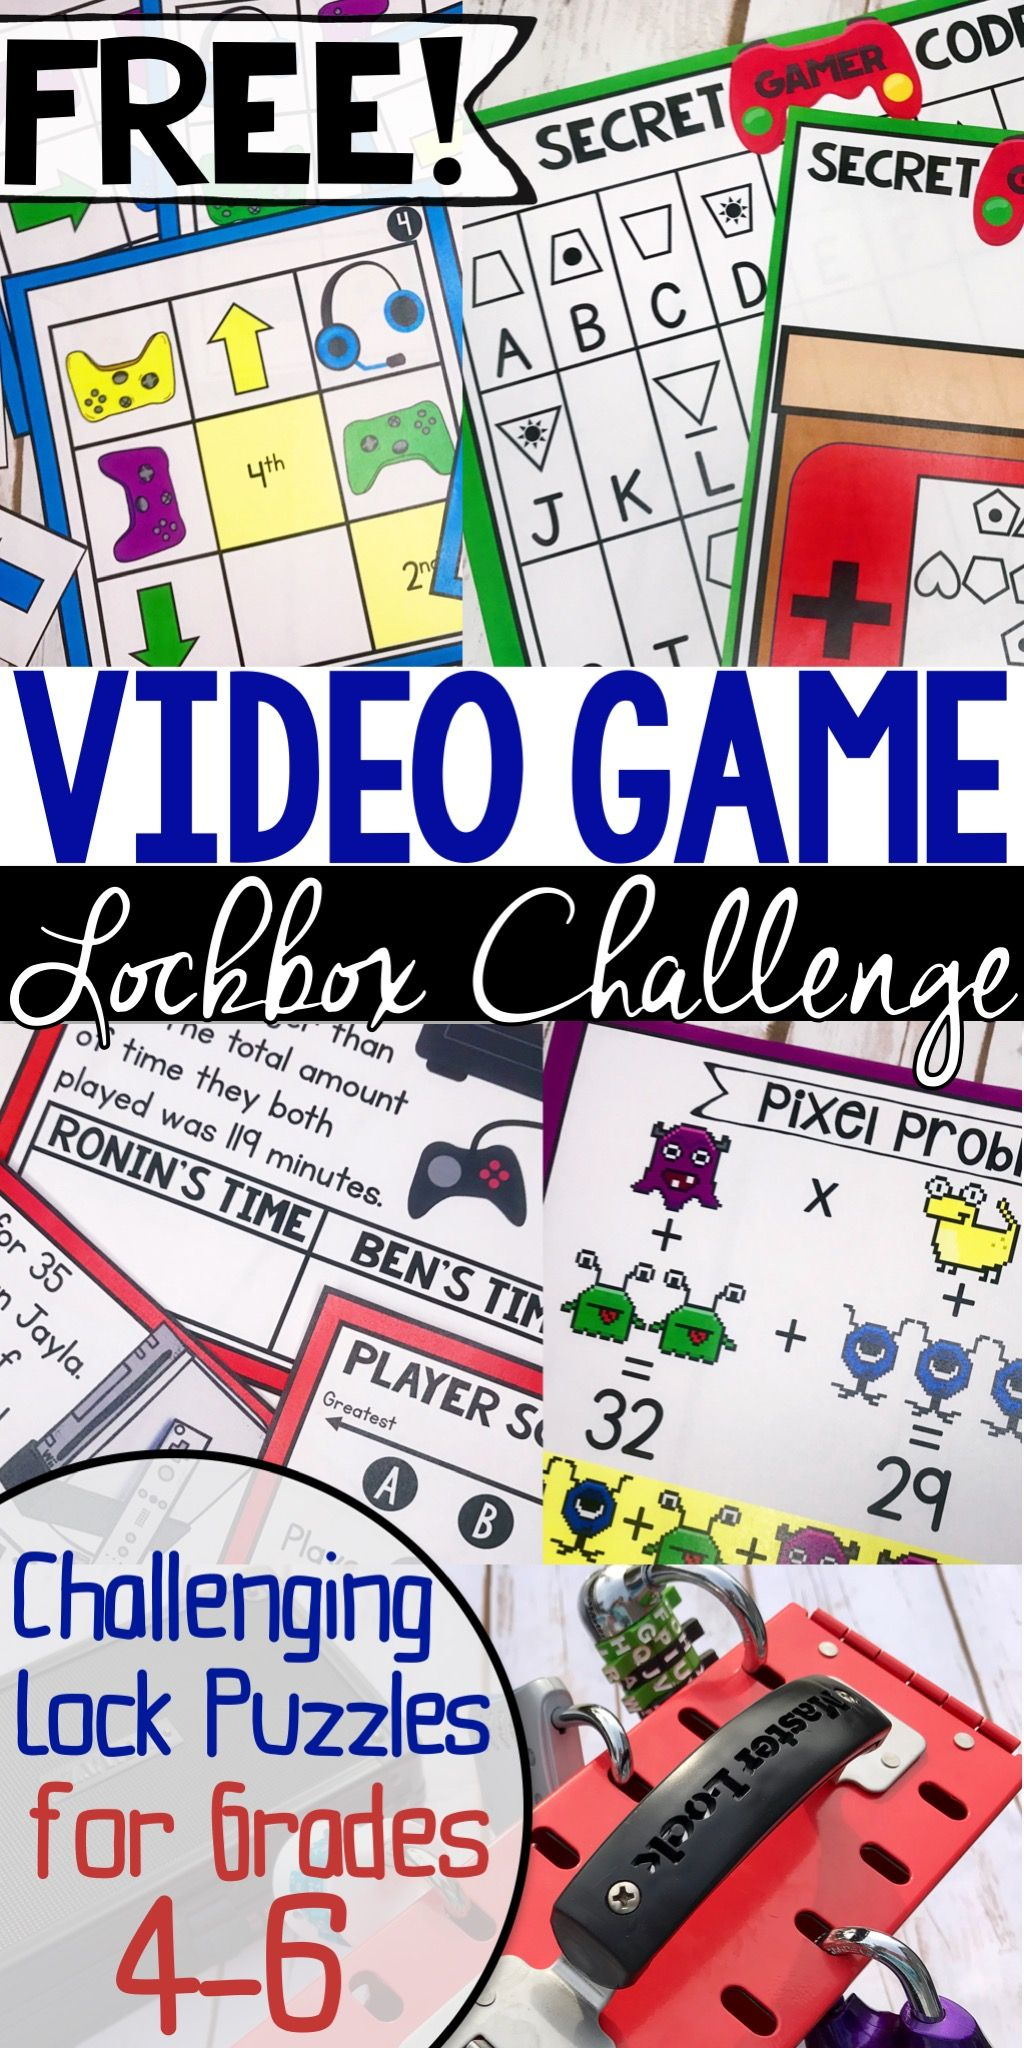 FREE Lockbox Challenge for upper elementary students